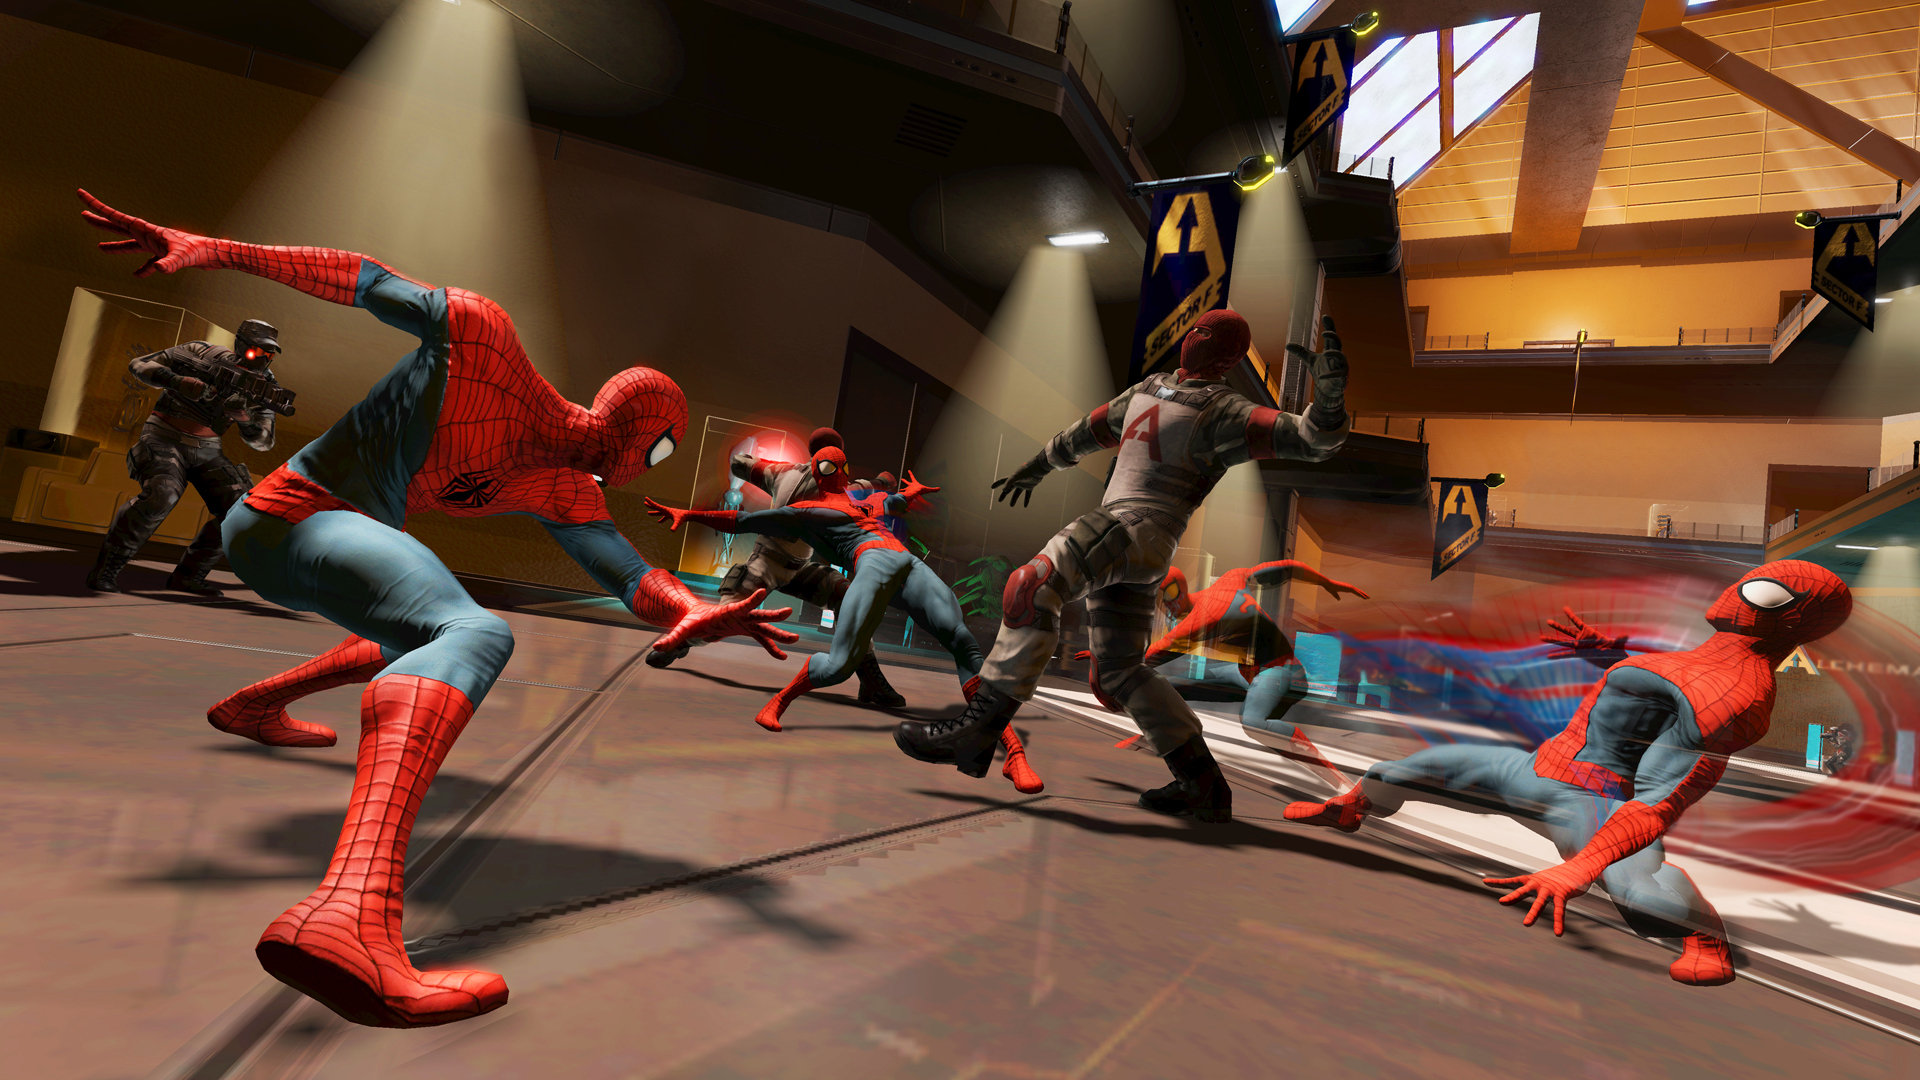 The Amazing Spider-Man calls upon his unmatched acrobatic skill to take the fight to his enemies.